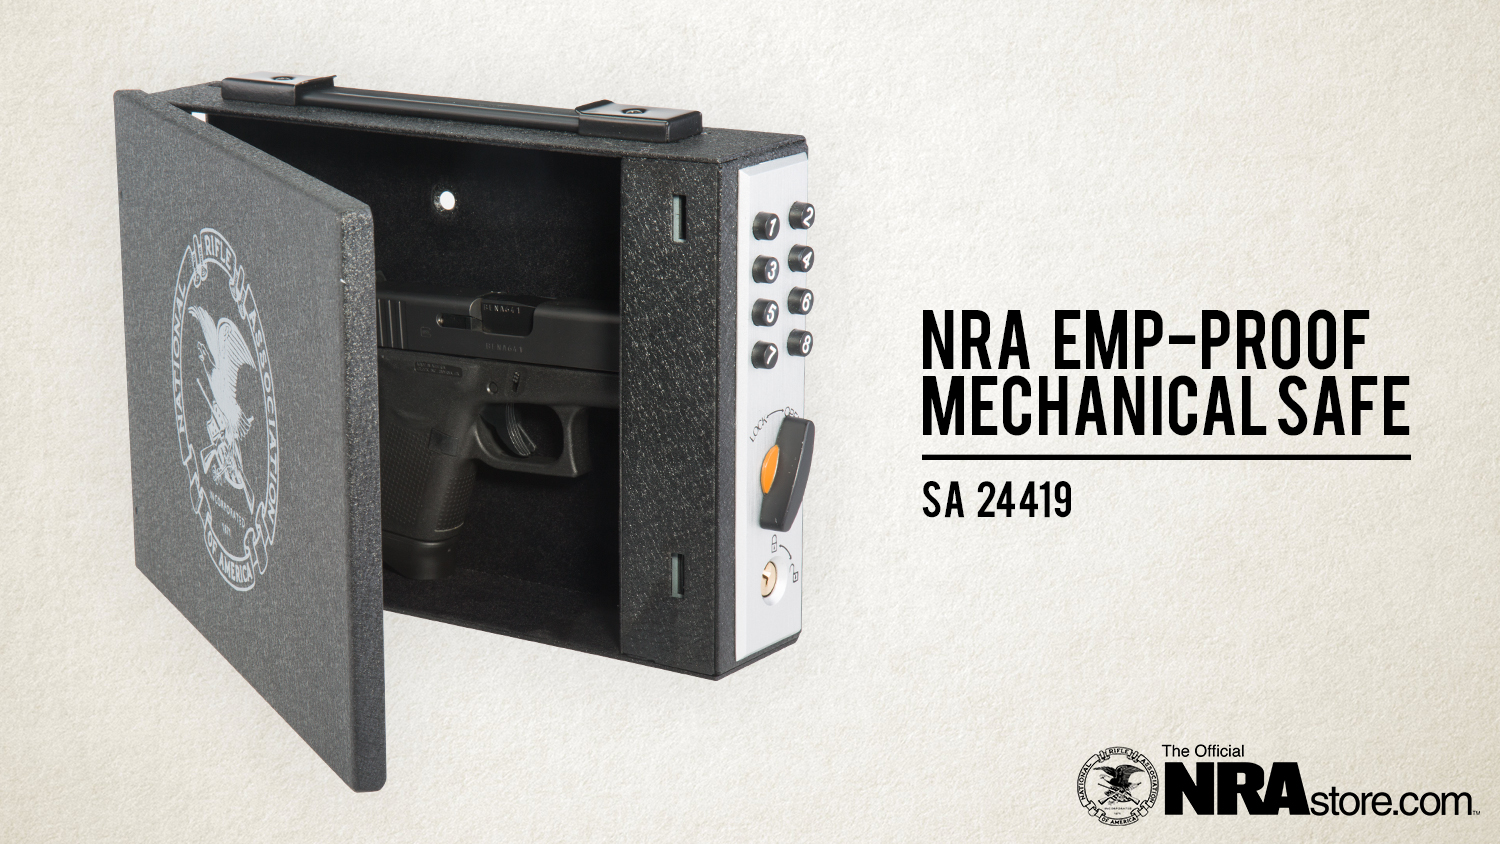 NRAstore Product Highlight: The NRA EMP-Proof Mechanical Safe